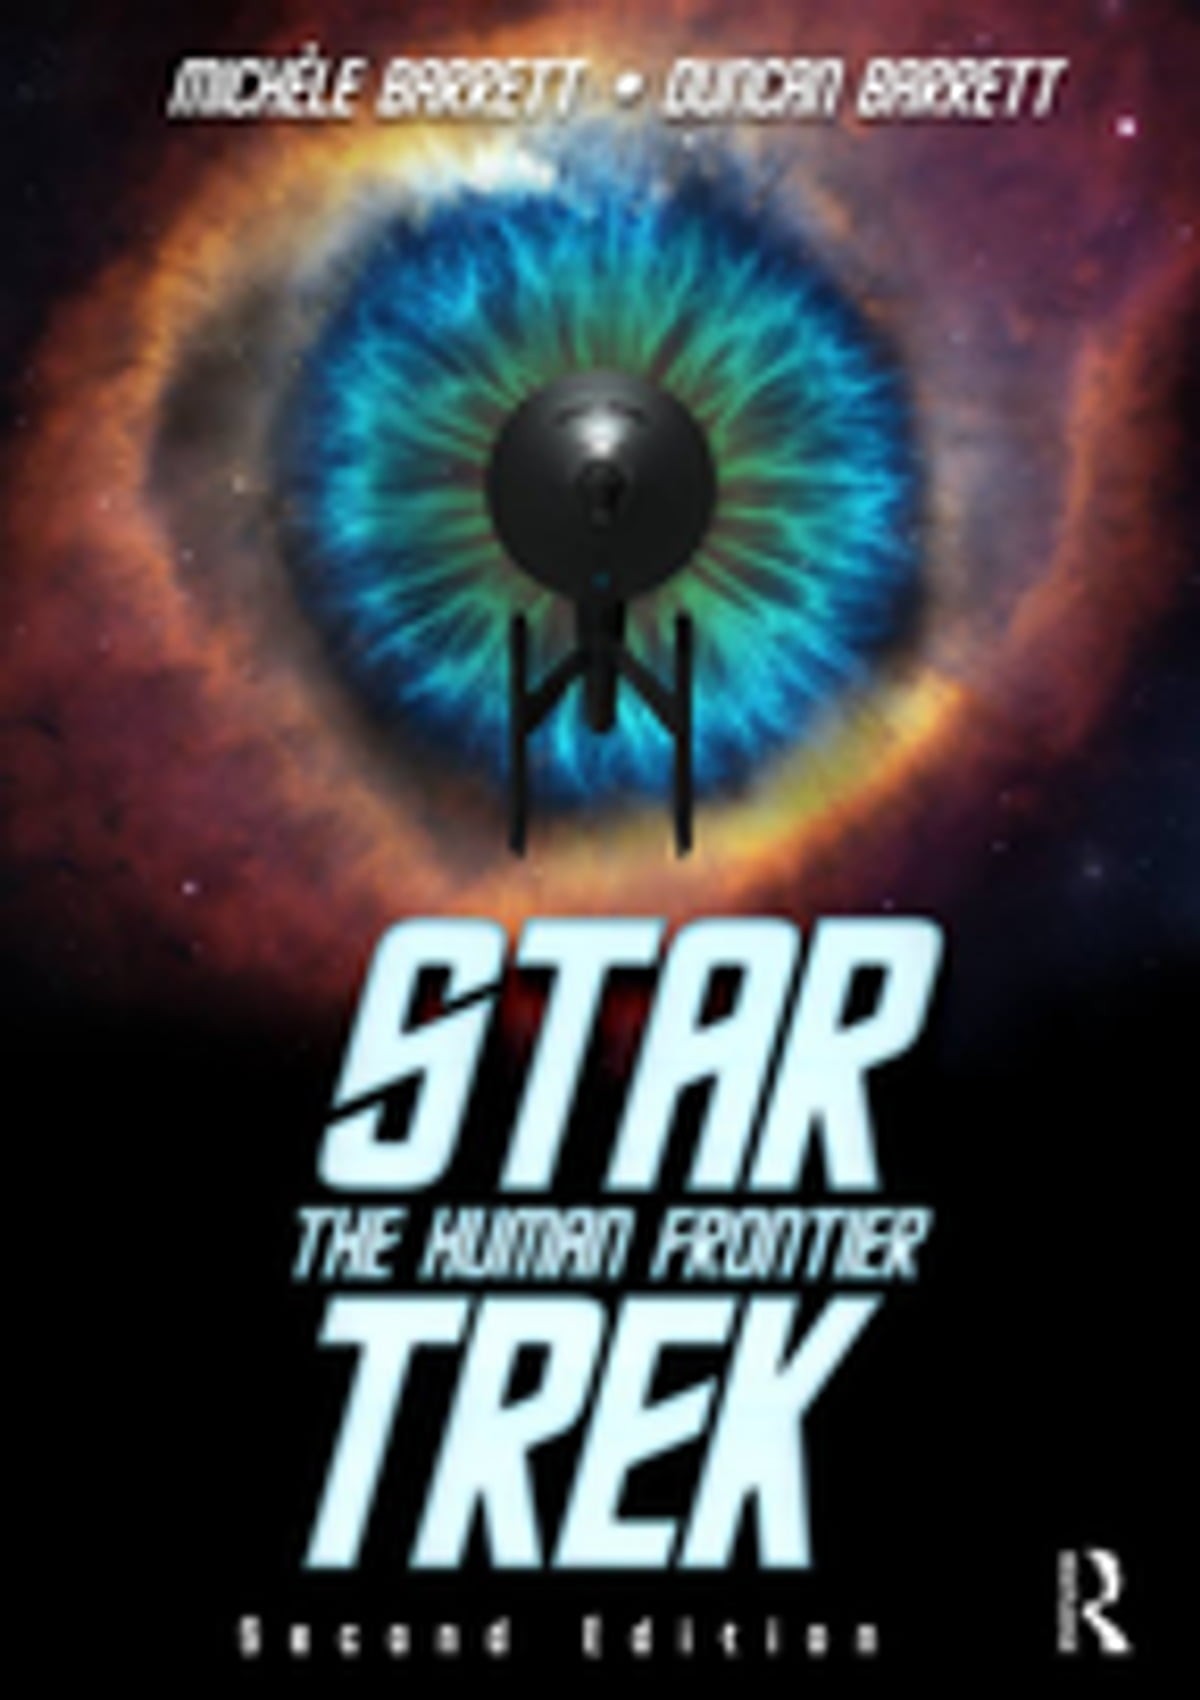 Star trek ebook by duncan barrett 9781315516479 rakuten kobo fandeluxe Document